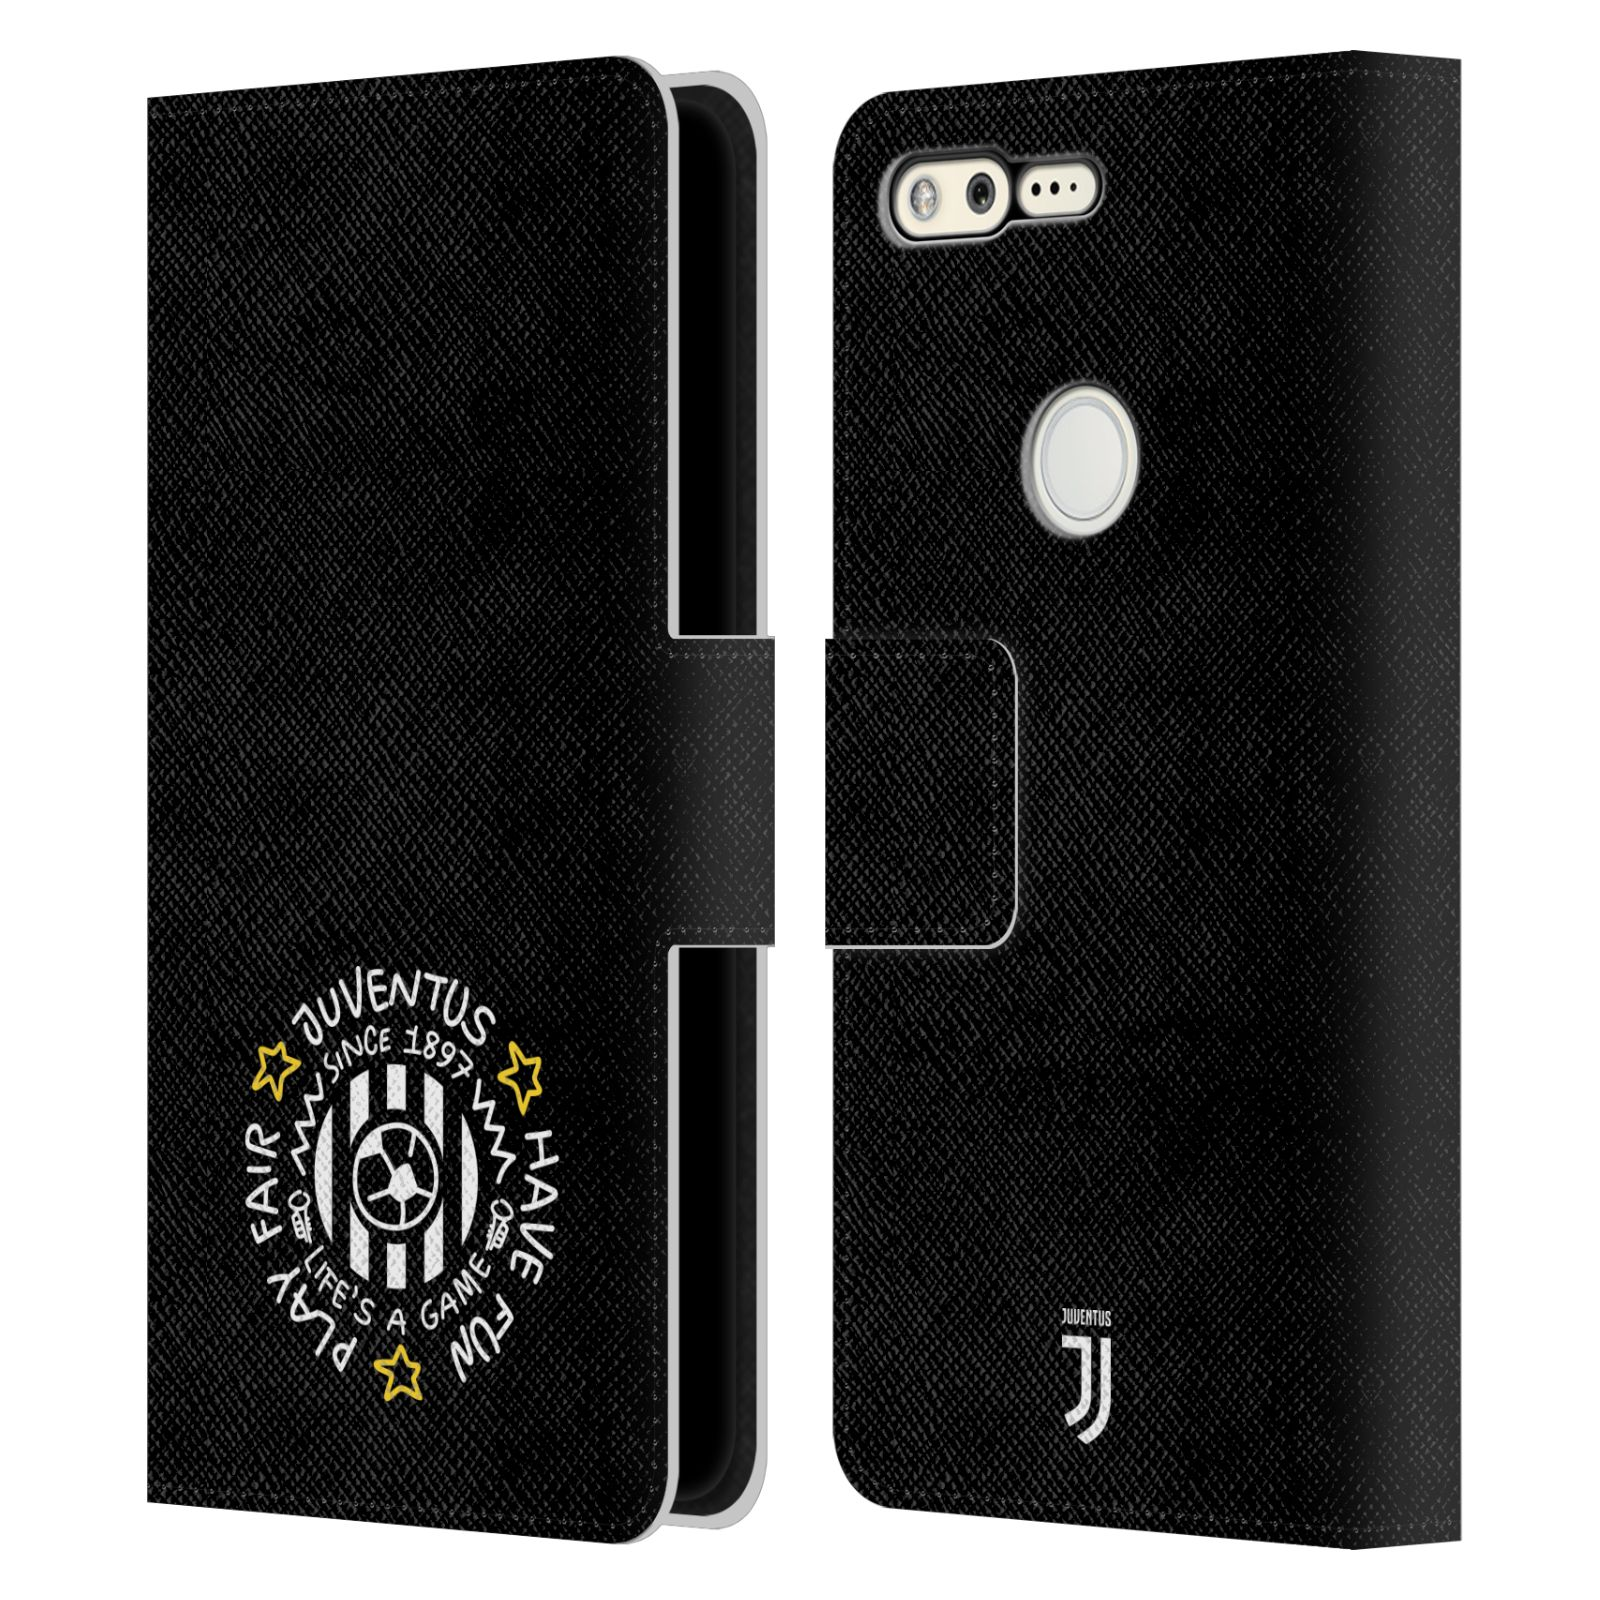 OFFICIAL-JUVENTUS-FOOTBALL-CLUB-2018-19-KIDS-LEATHER-BOOK-CASE-FOR-GOOGLE-PHONES